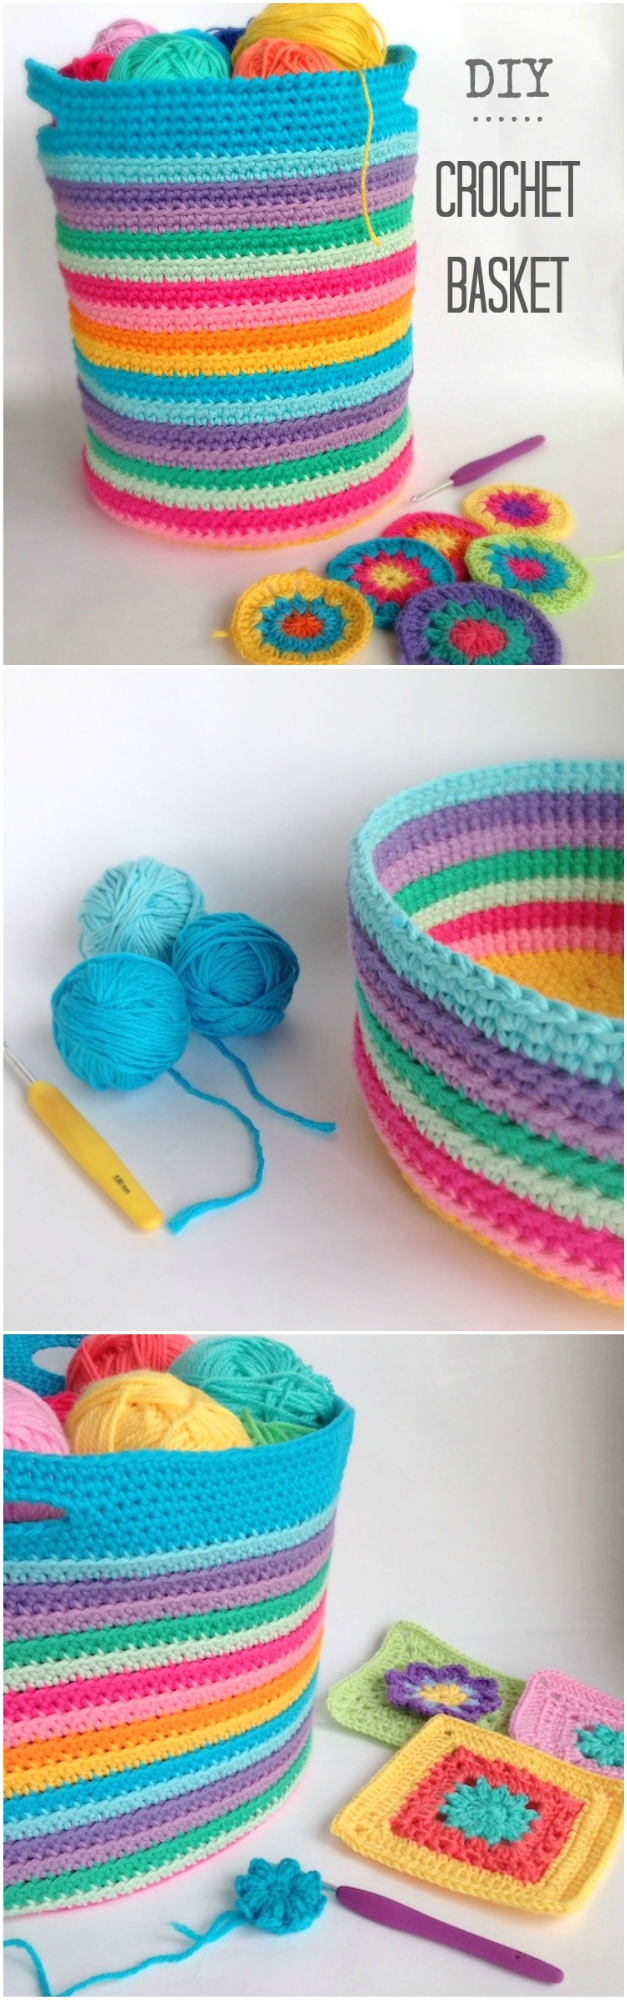 Diy Crochet Storage Basket Free Pattern The Whoot